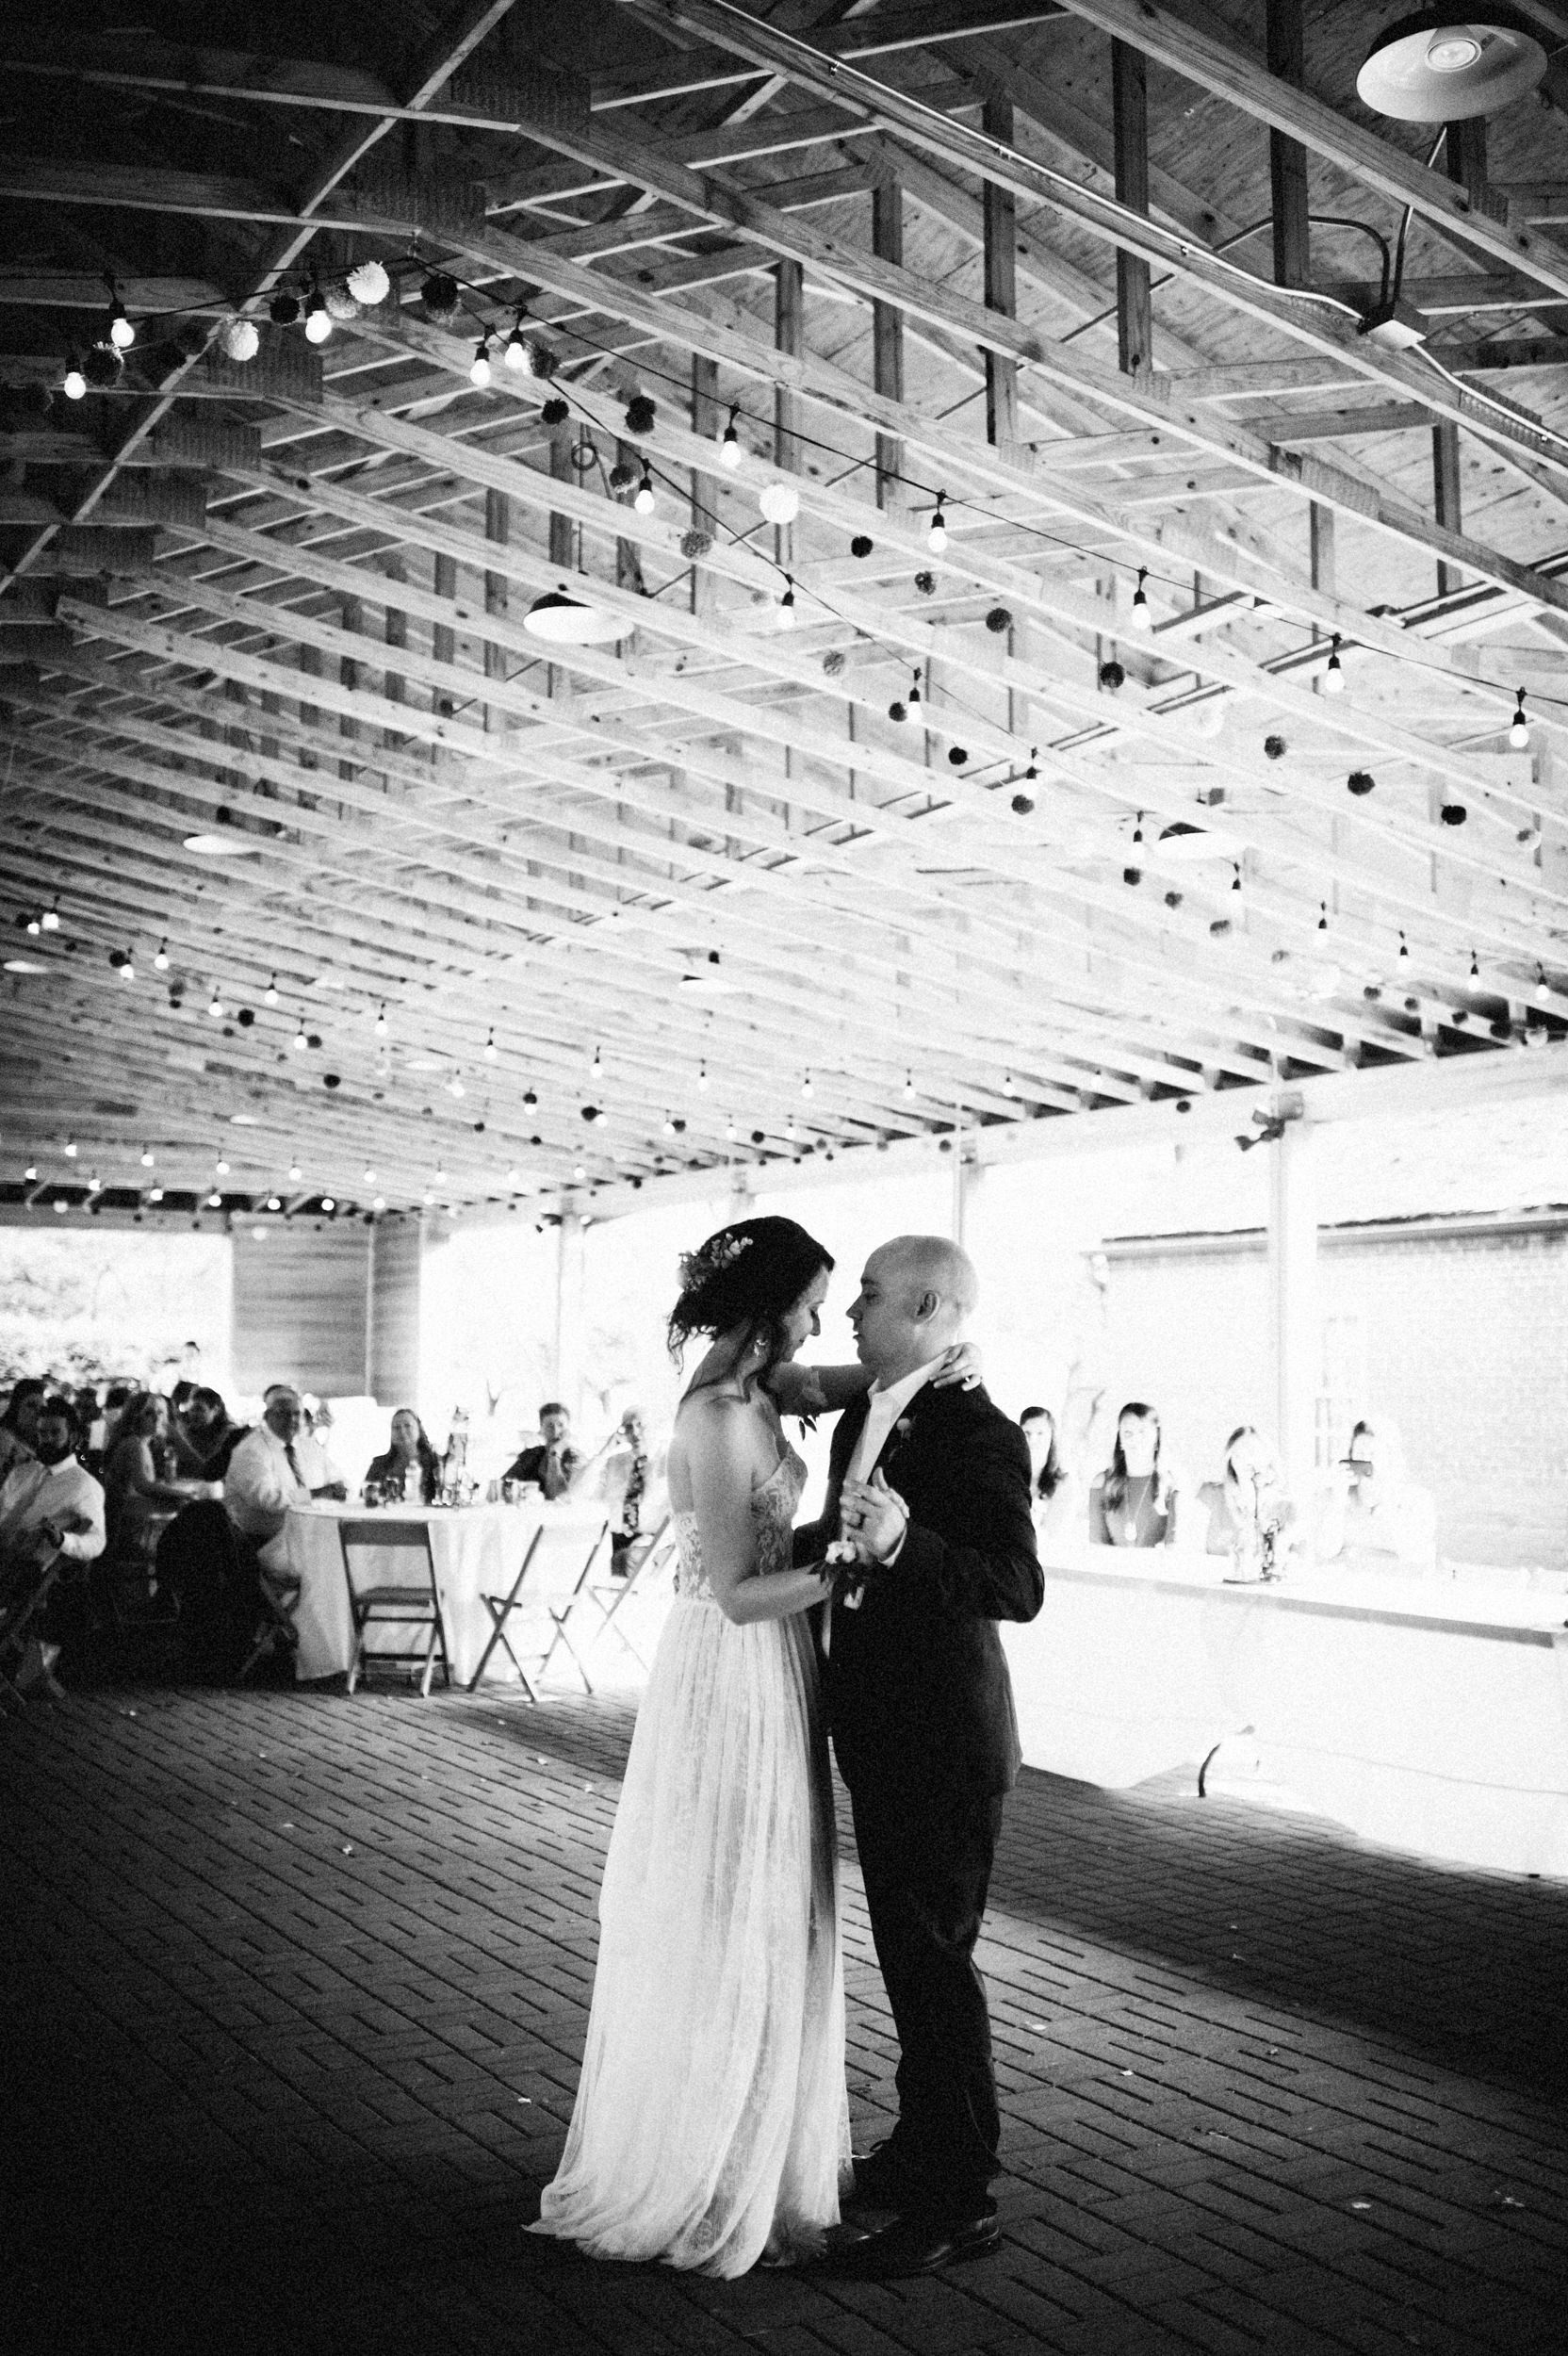 cassie-drew-wedding-farmington-sarah-katherine-davis-photography-481edit.jpg